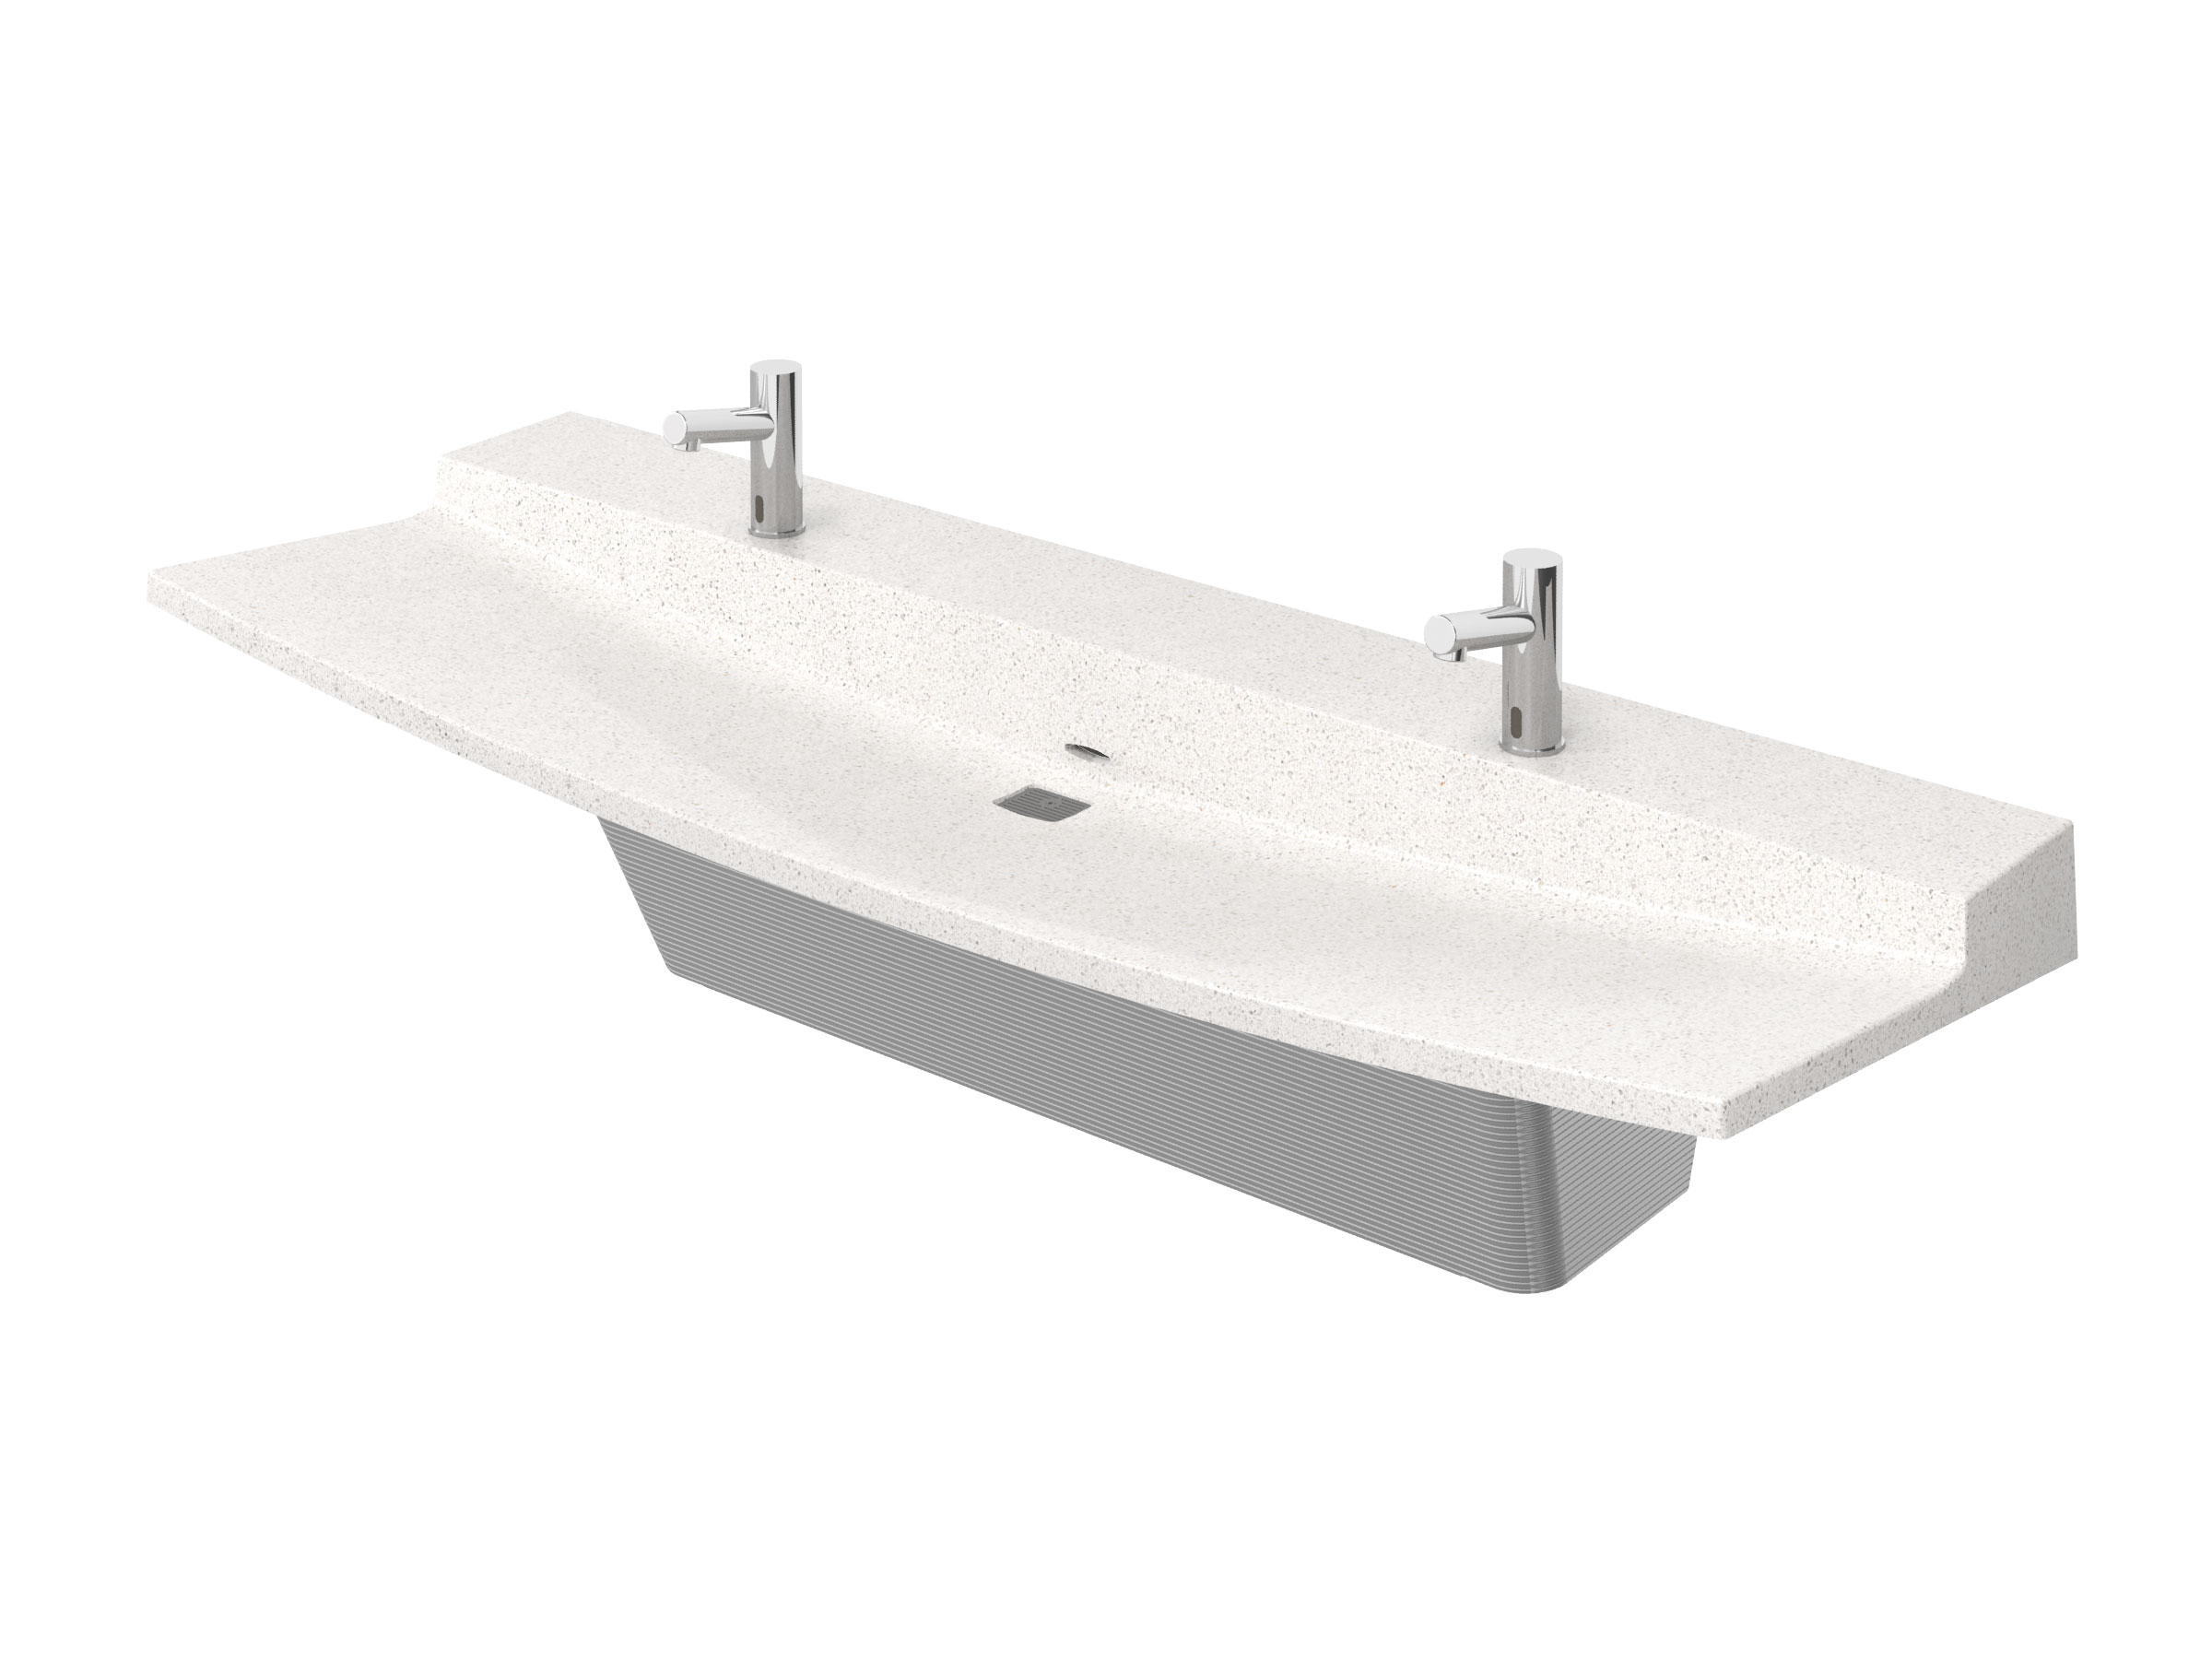 bradley_revit_Verge-2-station_lavatory_sink_family_LVLD2